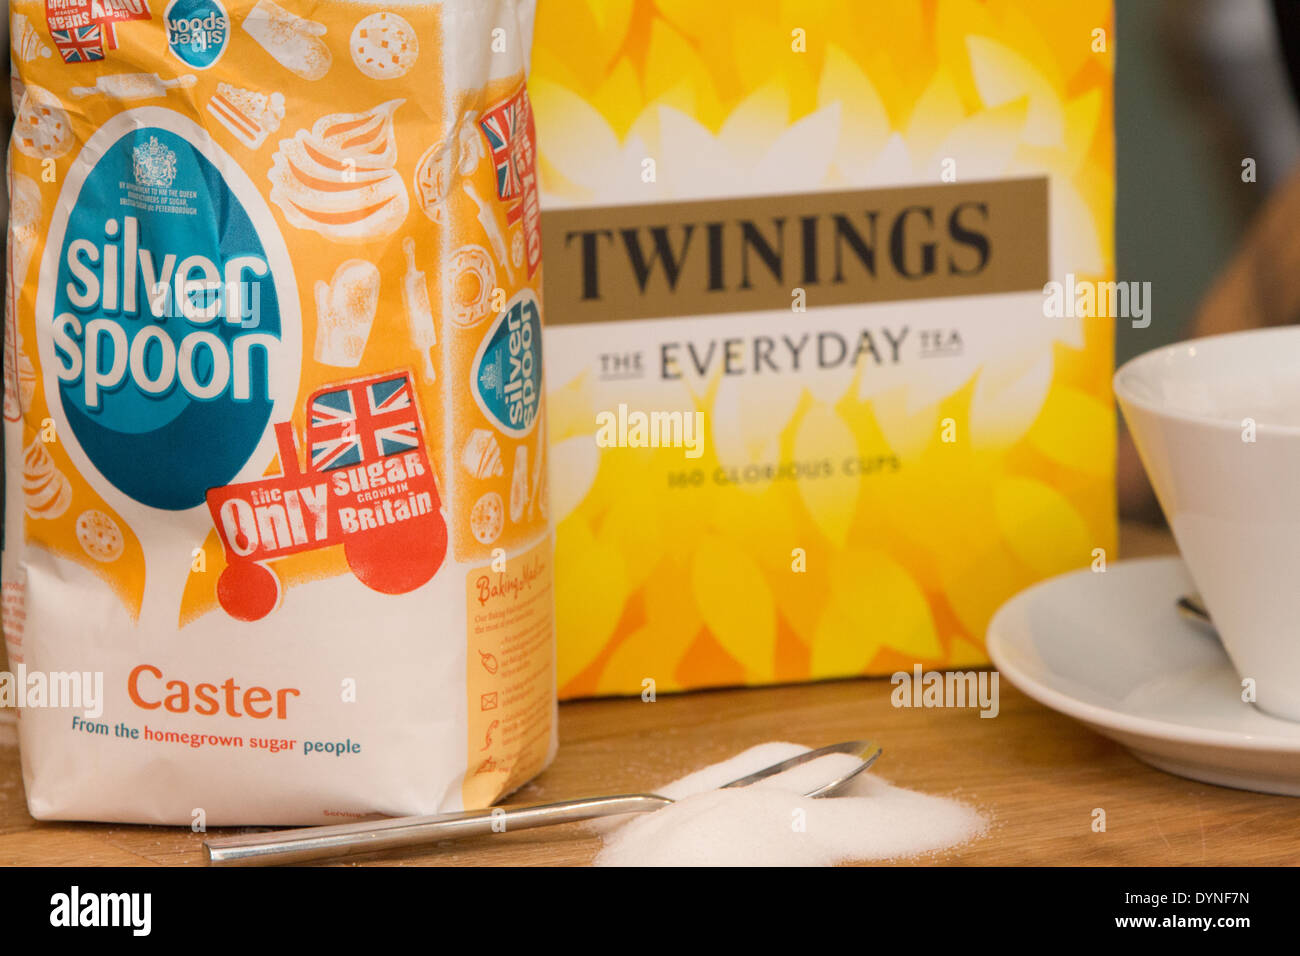 Silver Spoon and Twinings tea, two well known brands of AB Foods - Stock Image